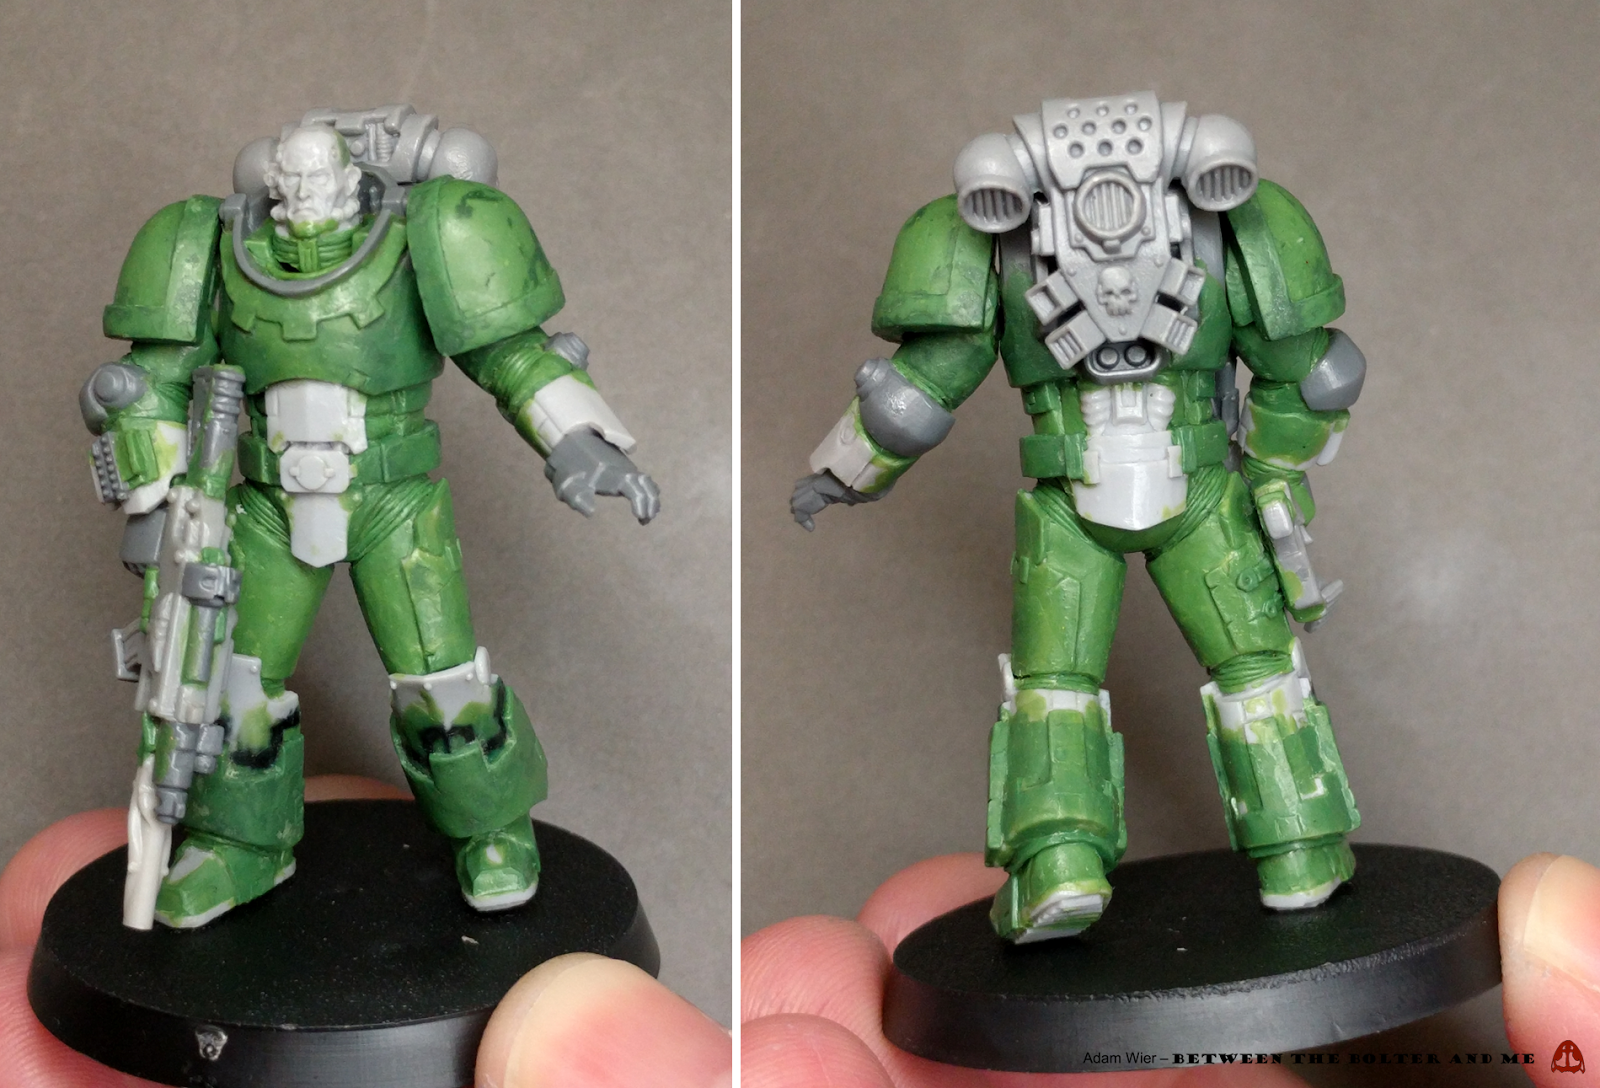 By the manner of their death we shall know them. Space Marine ...